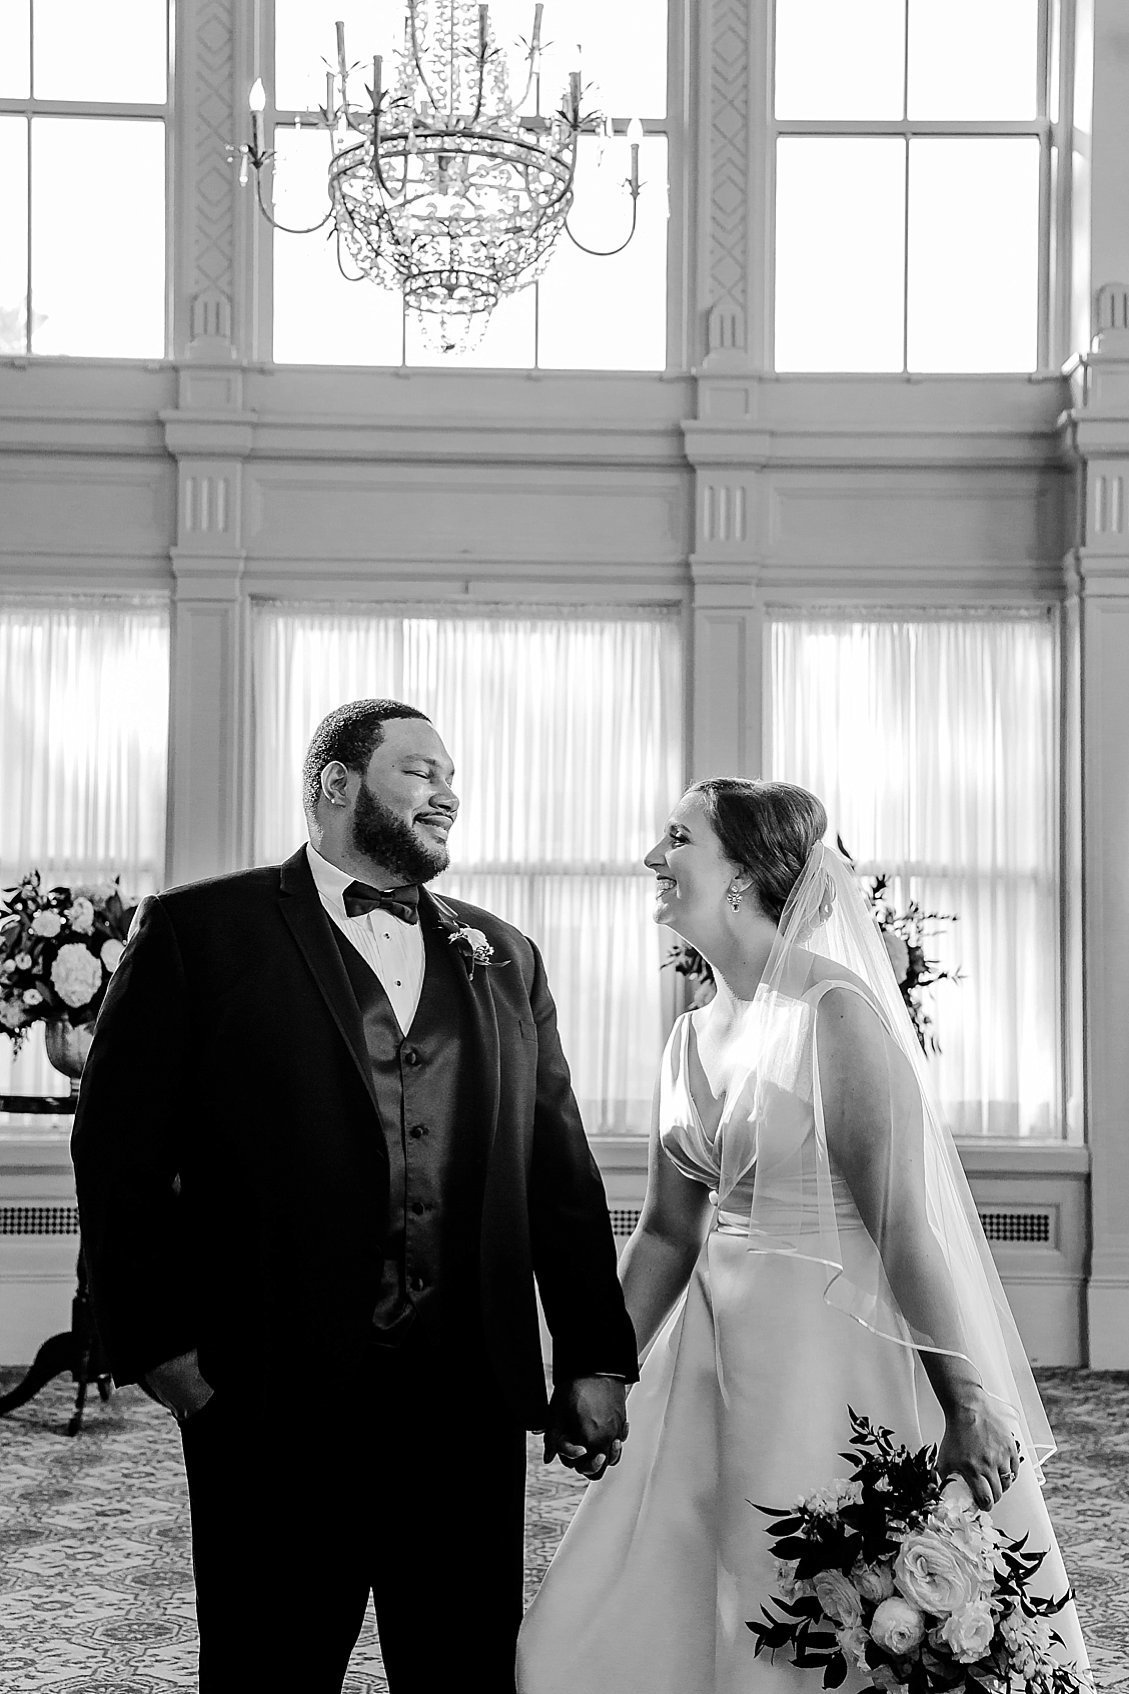 sharonelizabethphotography-johnmarshallballrooms-richmondvirginiaweddingphotographer-classicballroomwedding-johnmarshallballroomwedding{seq}4976